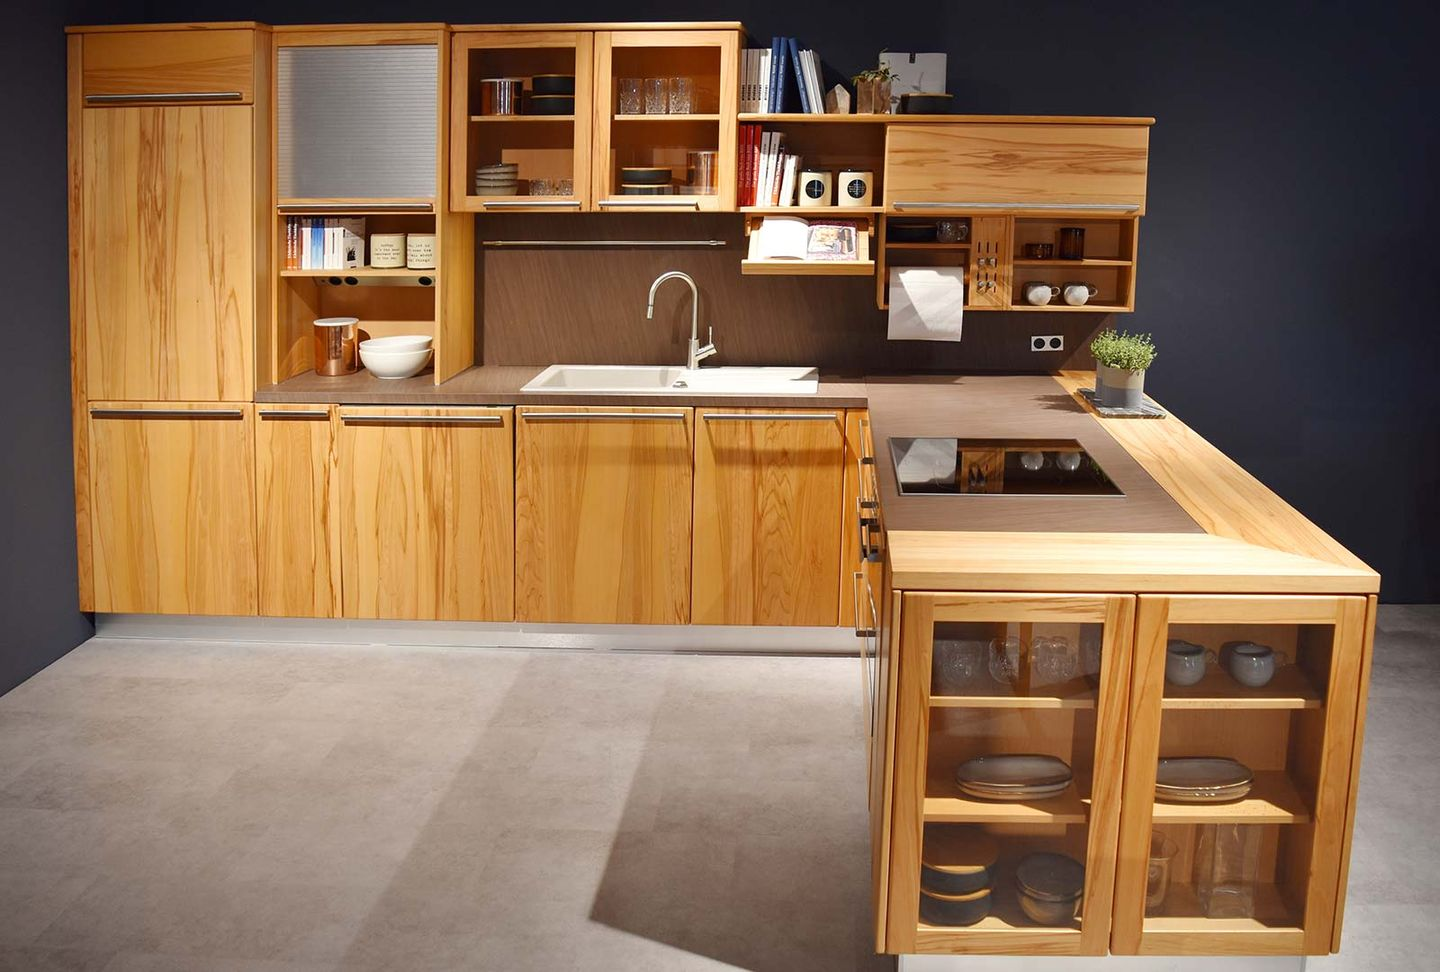 rondo solid wood kitchen at TEAM 7 store Stuttgart